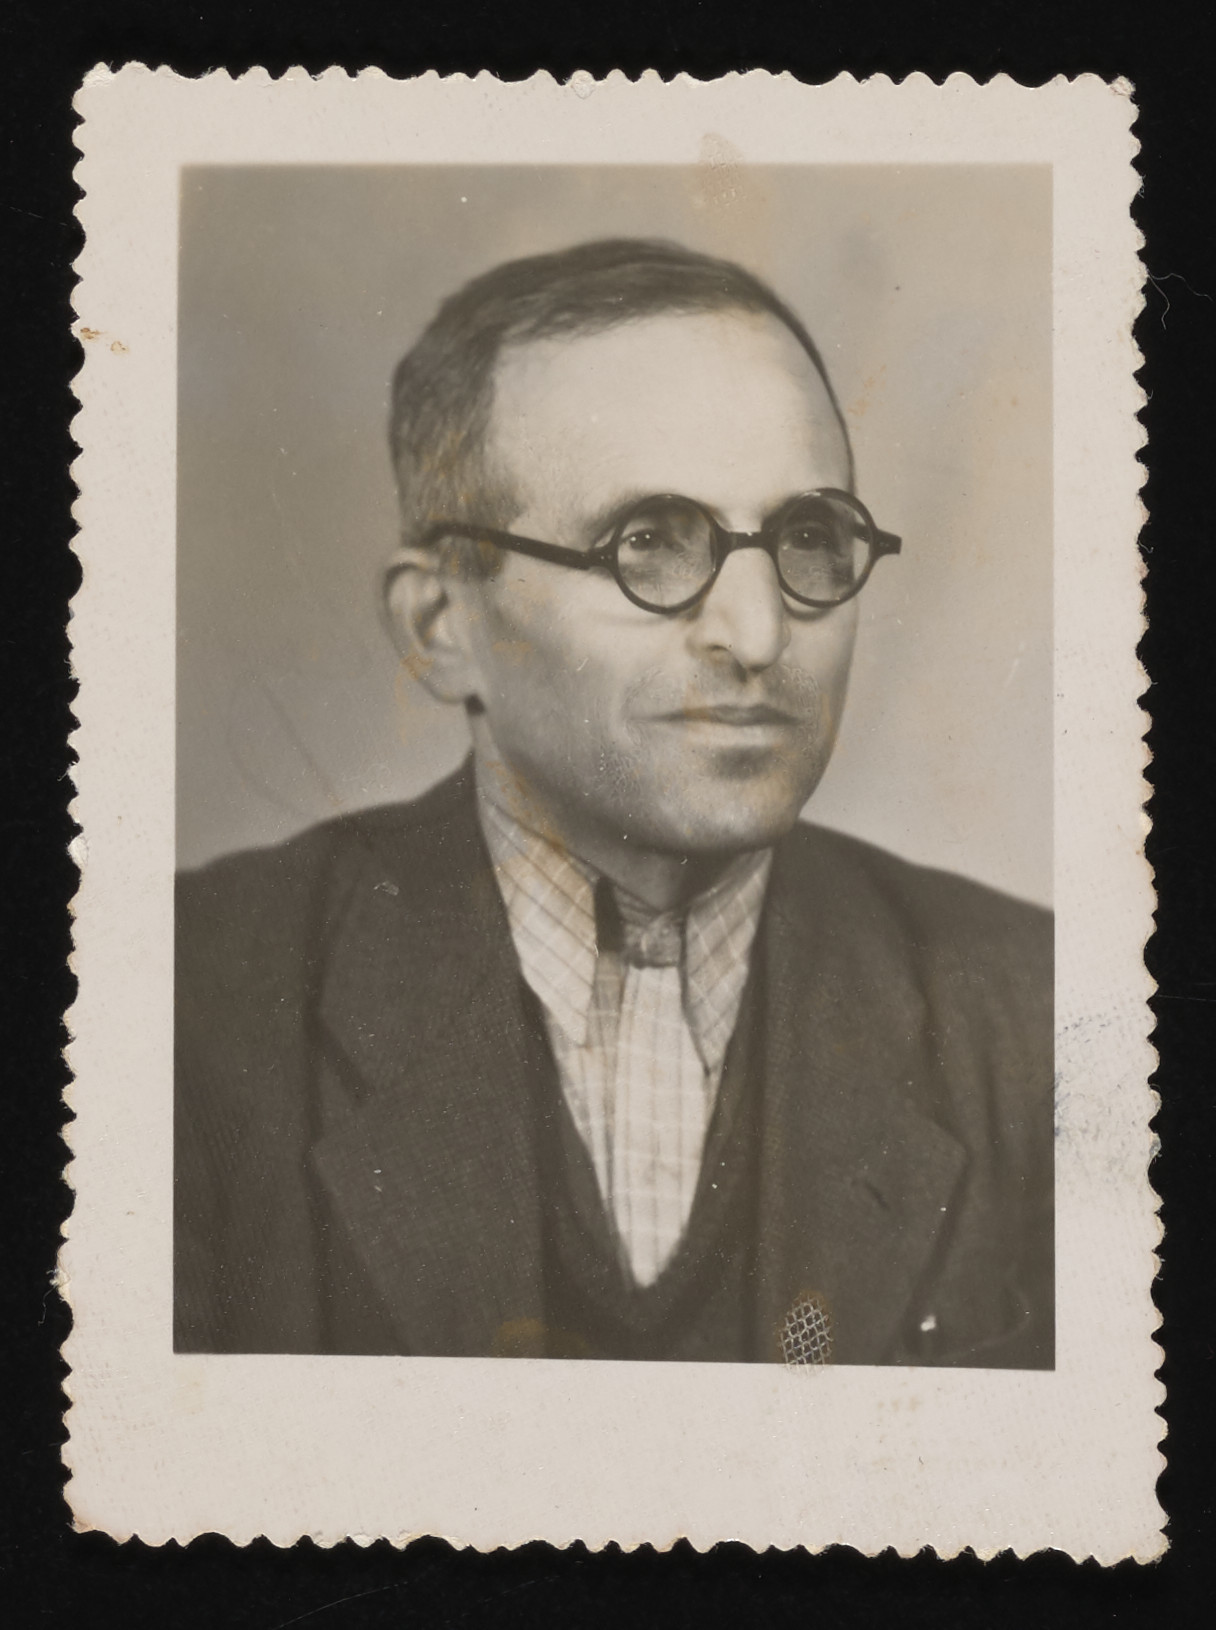 Close-up portrait of Hungarian survivor, Lajos Ornstein, shortly after his liberation from Mauthausen.